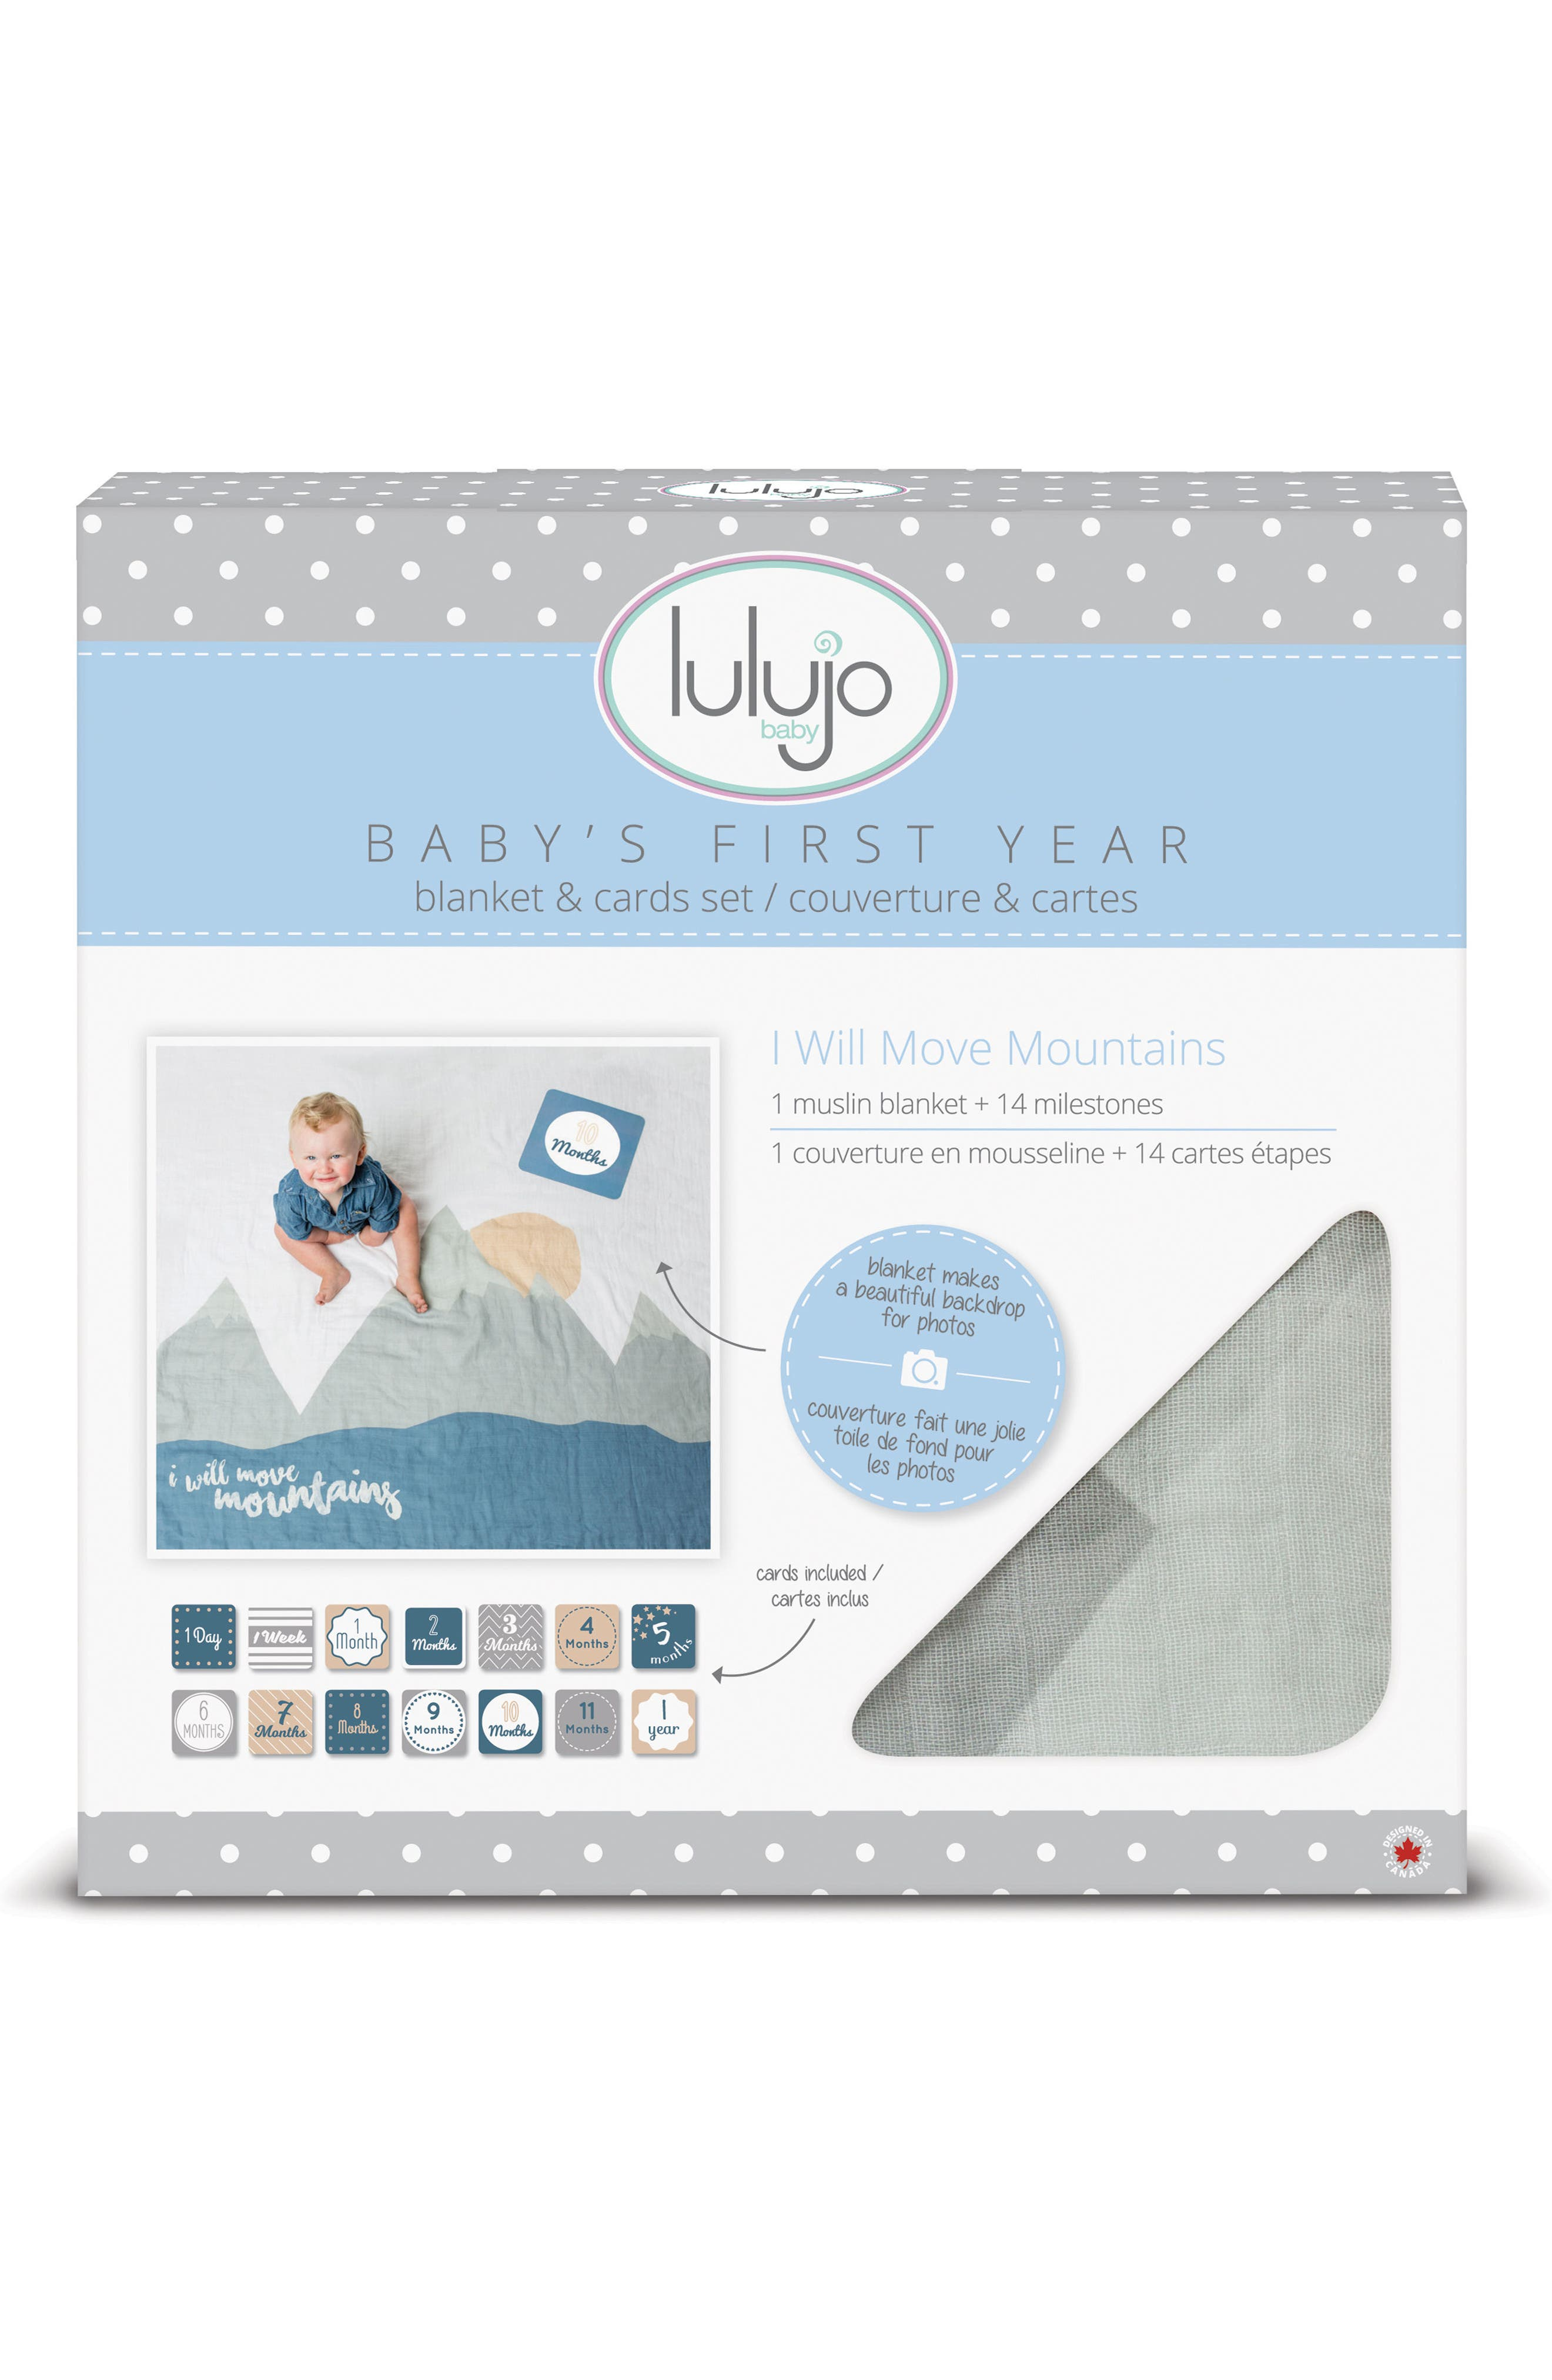 Baby's First Year - I Will Move Mountains Muslin Blanket & Milestone Card Set,                             Alternate thumbnail 2, color,                             WILL MOVE MOUNTAINS